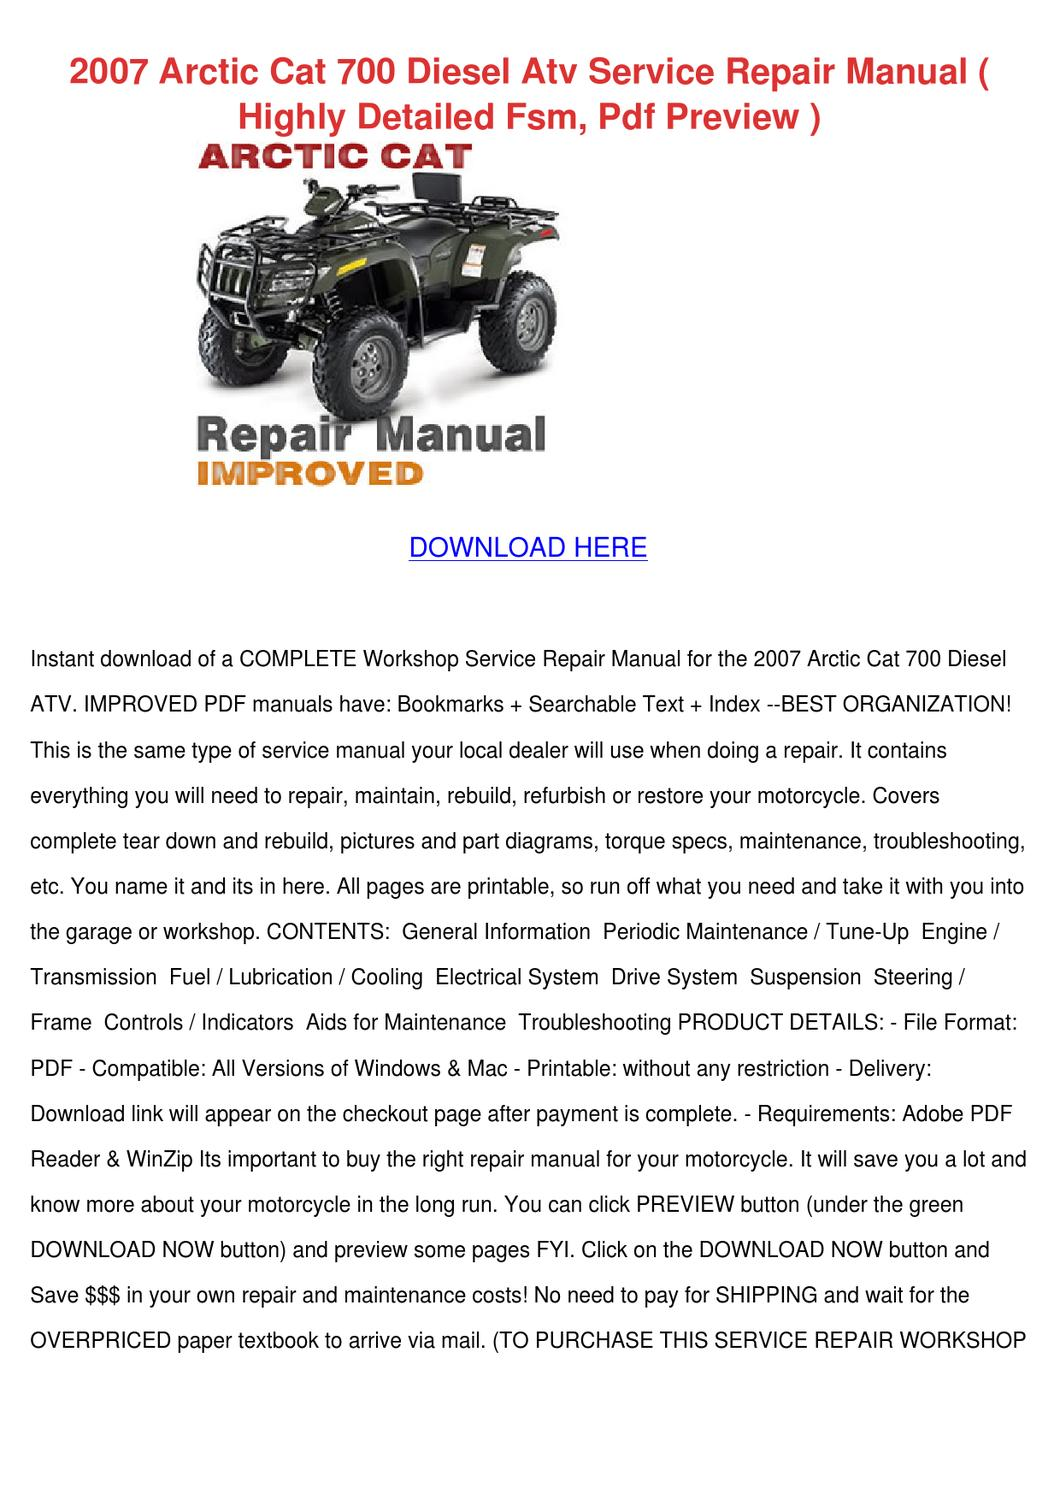 2007 Arctic Cat 700 Diesel Atv Service Repair By